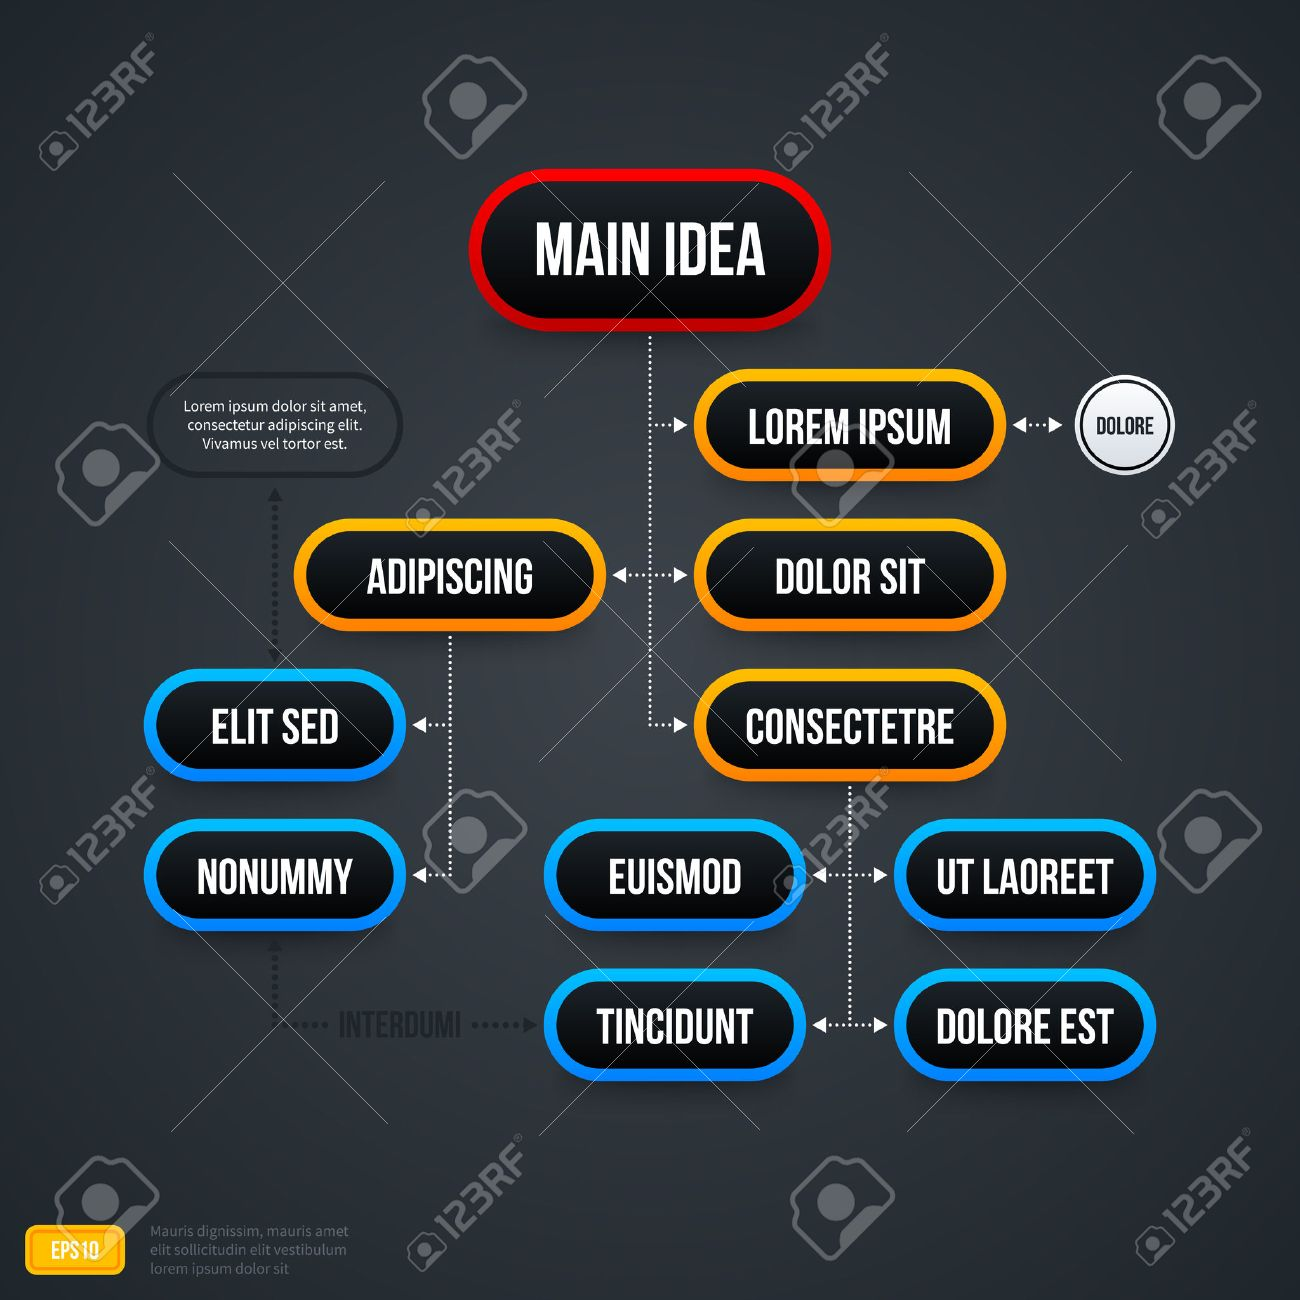 Organizational Chart Template Useful For Web Design Or Advertising